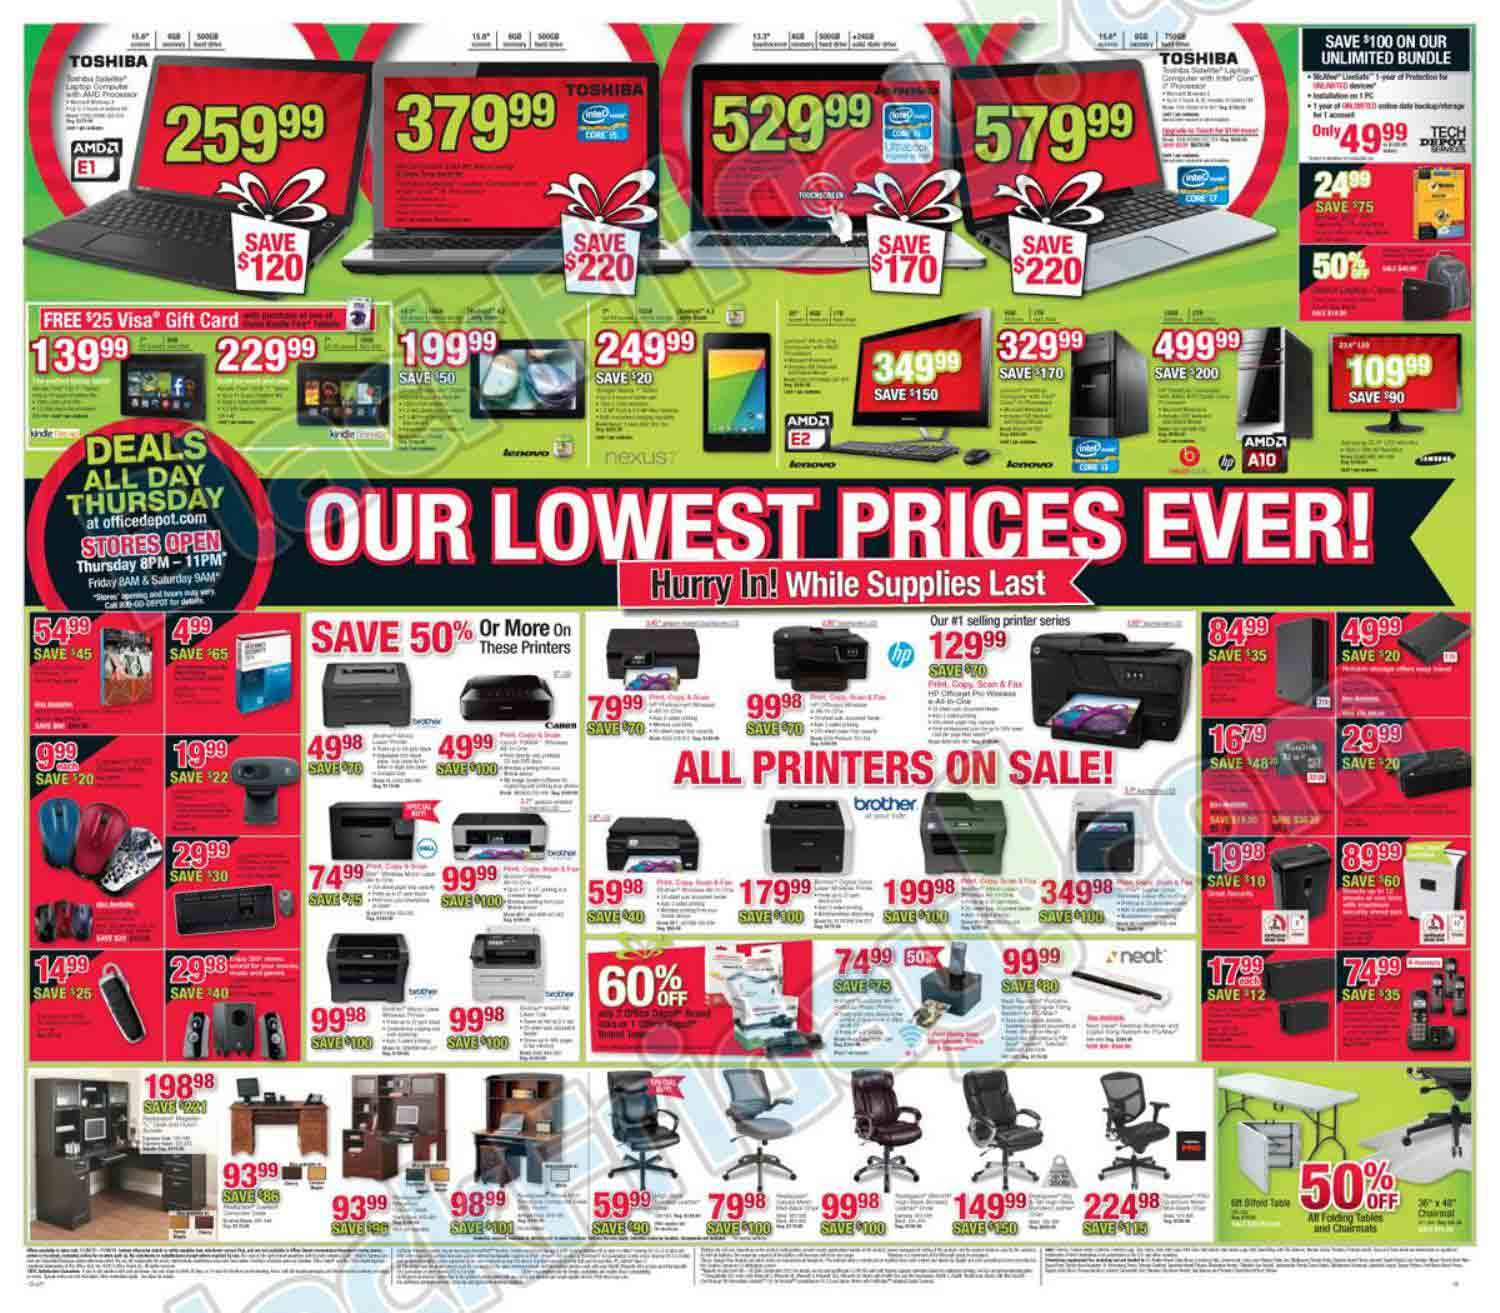 fice Depot Black Friday Ad Find the Best fice Depot